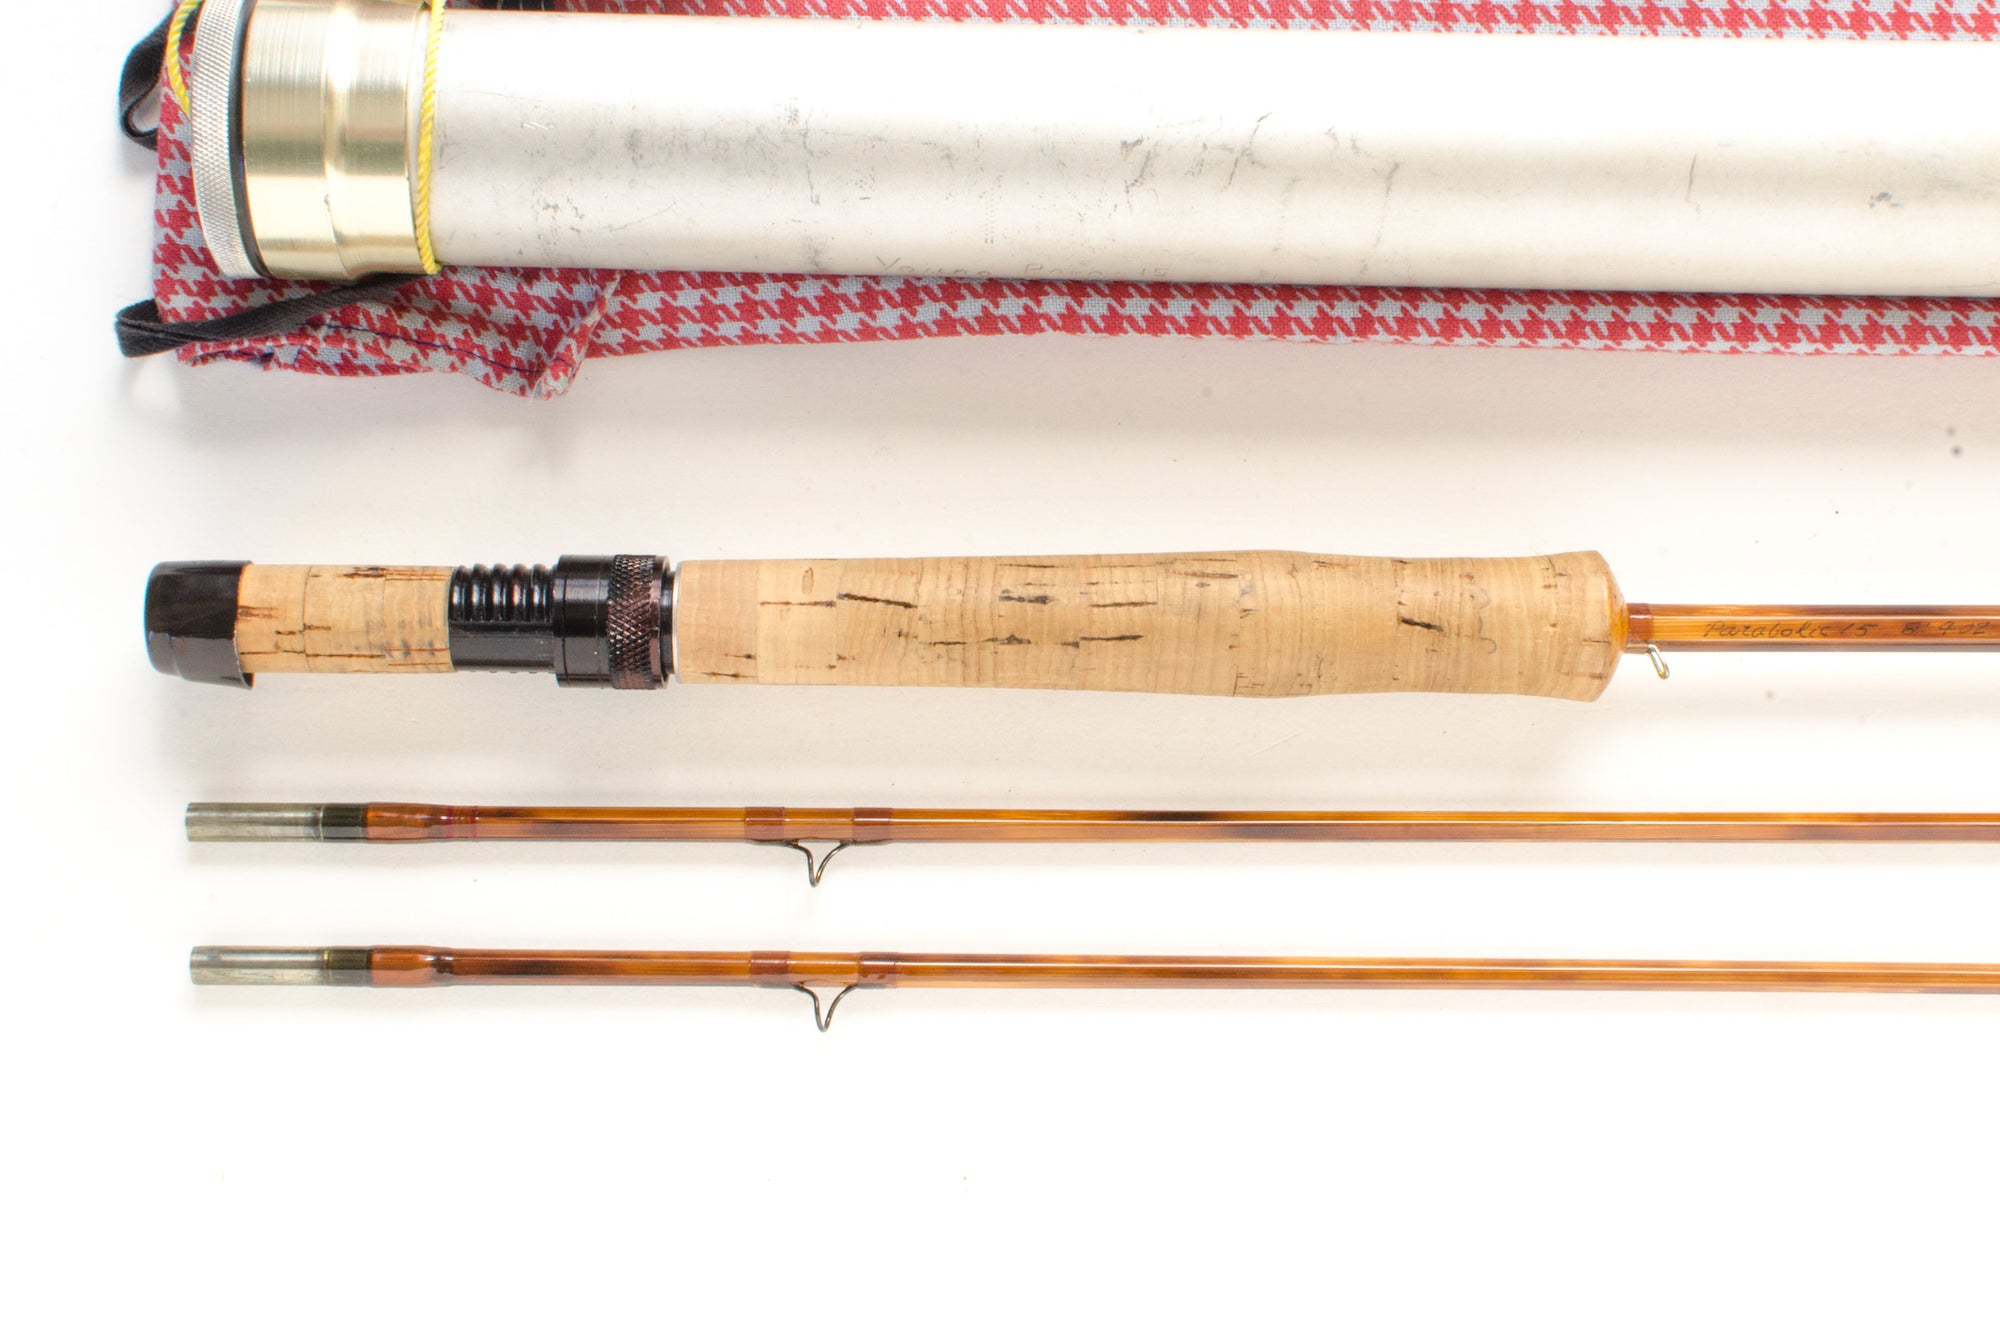 Paul Young Parabolic 15 Fly Rod